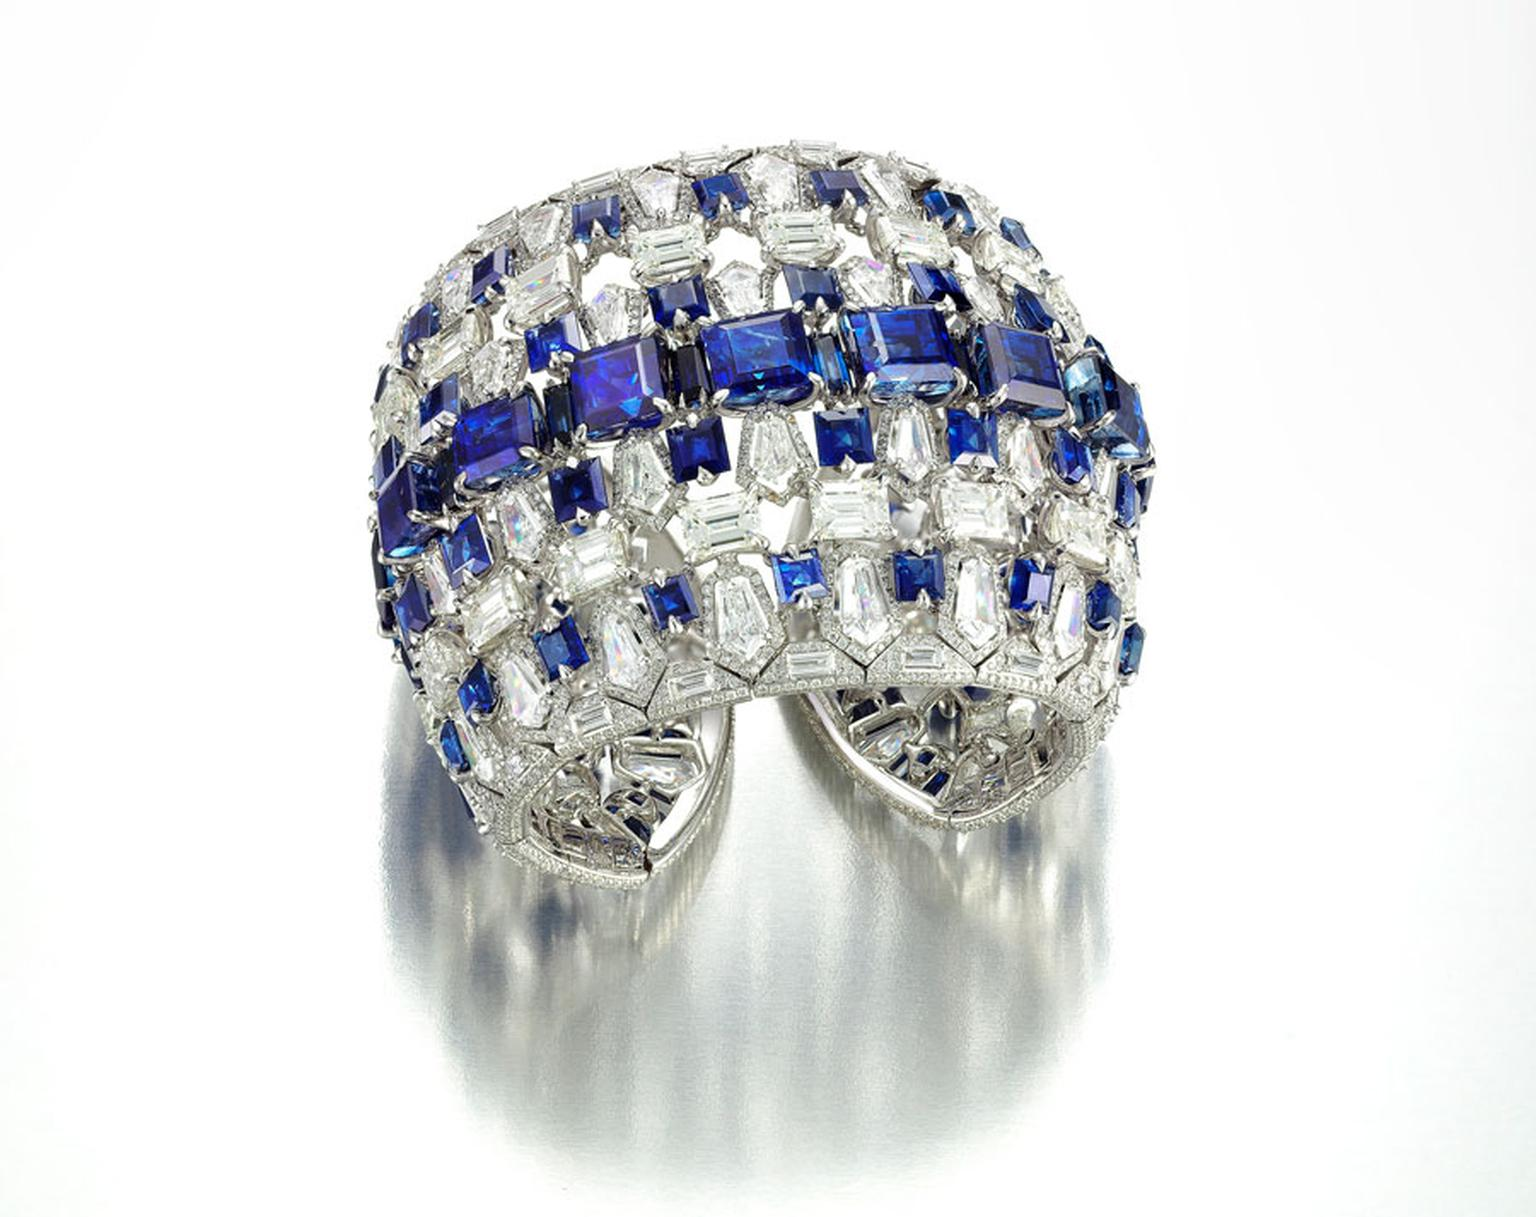 MPL-2013-BOGH-ART-Kashmir-sapphires-and-diamonds-bracelet.jpg